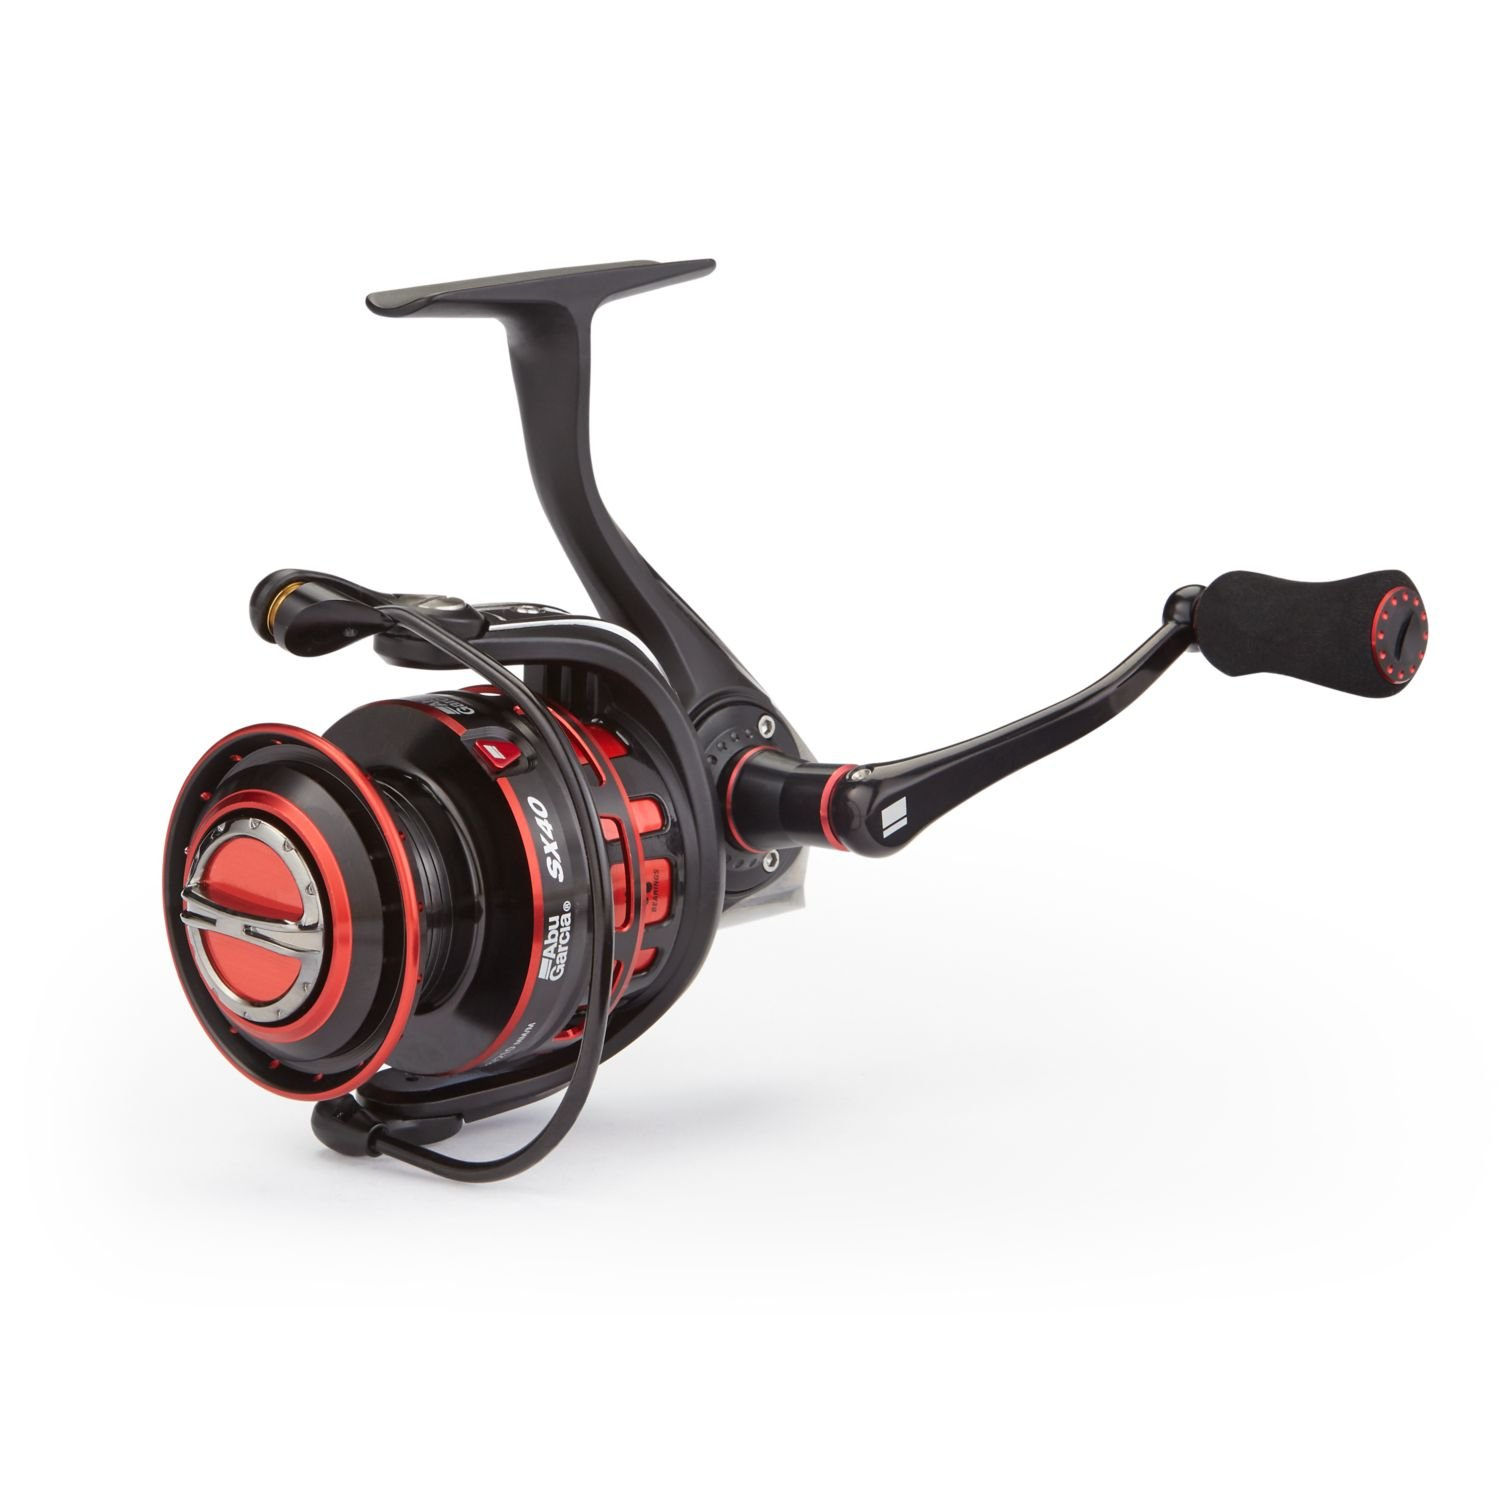 5626895b63d Amazon.com : Abu Garcia Revo SX Spinning Reel : Sports & Outdoors